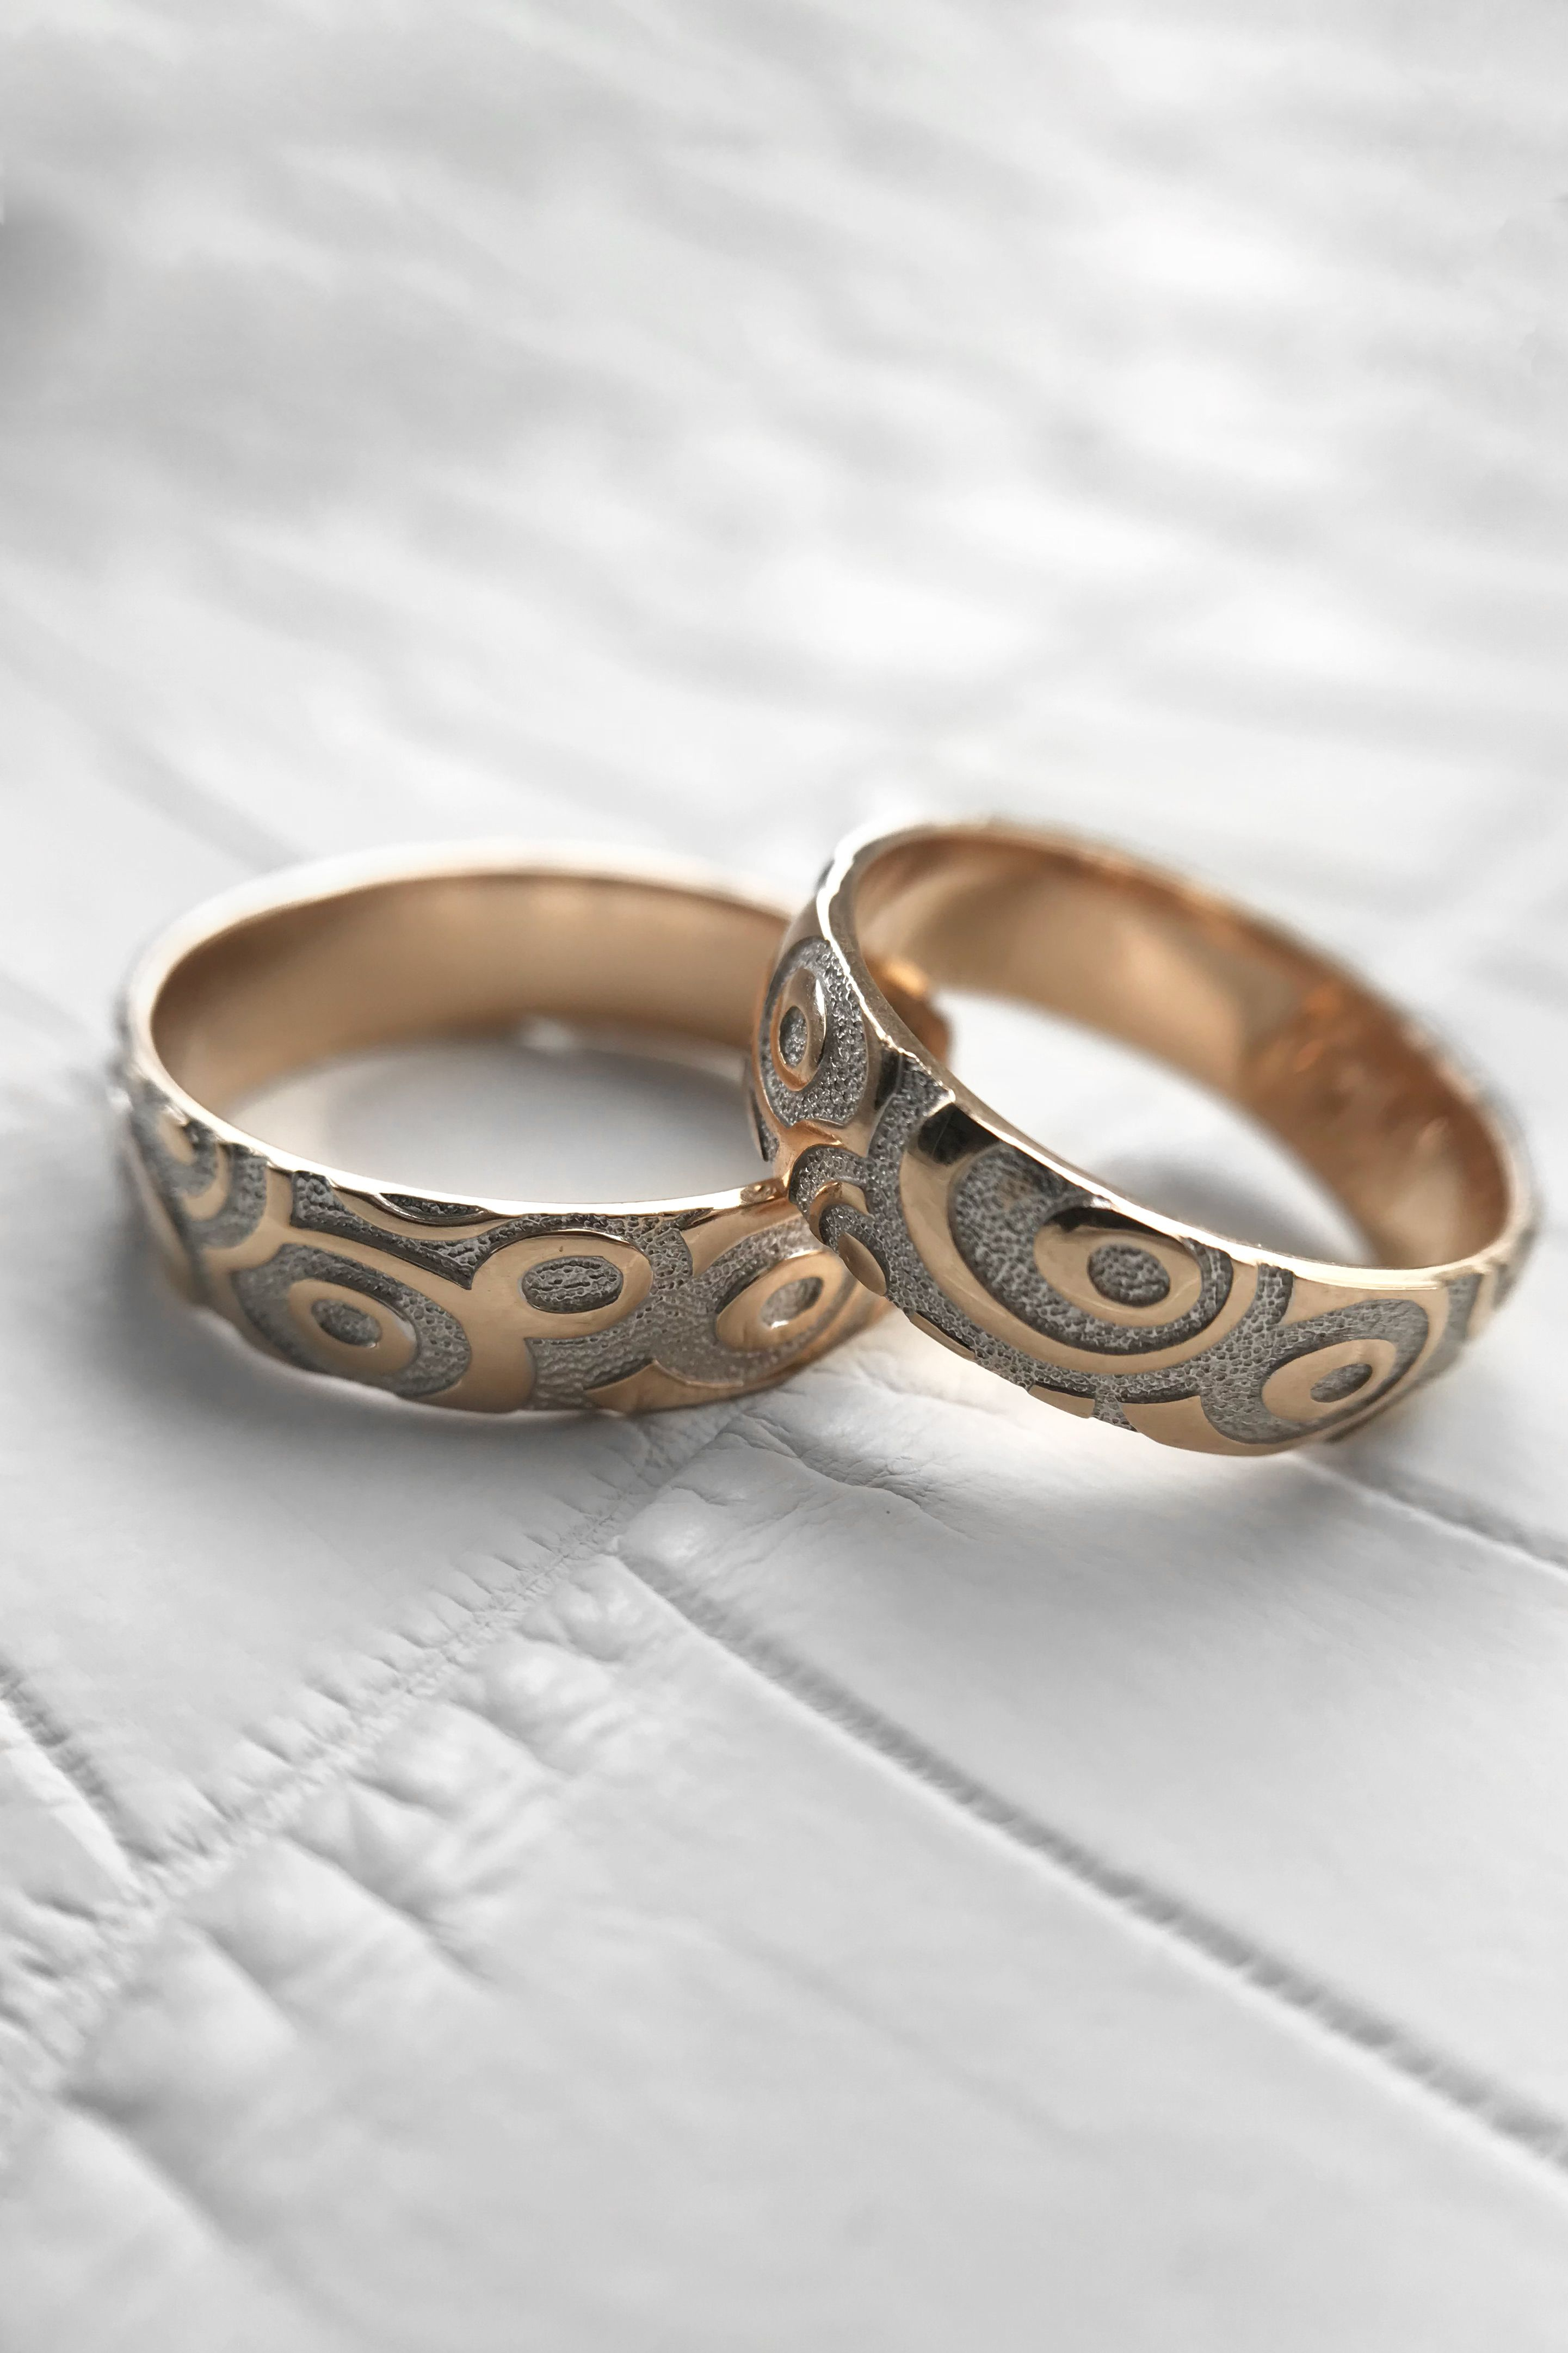 14k Gold Personalized Wedding Ring Set Unique Simple Wedding Band Set Engraved Pro Engraved Promise Rings Simple Wedding Band Sets Personalized Wedding Rings